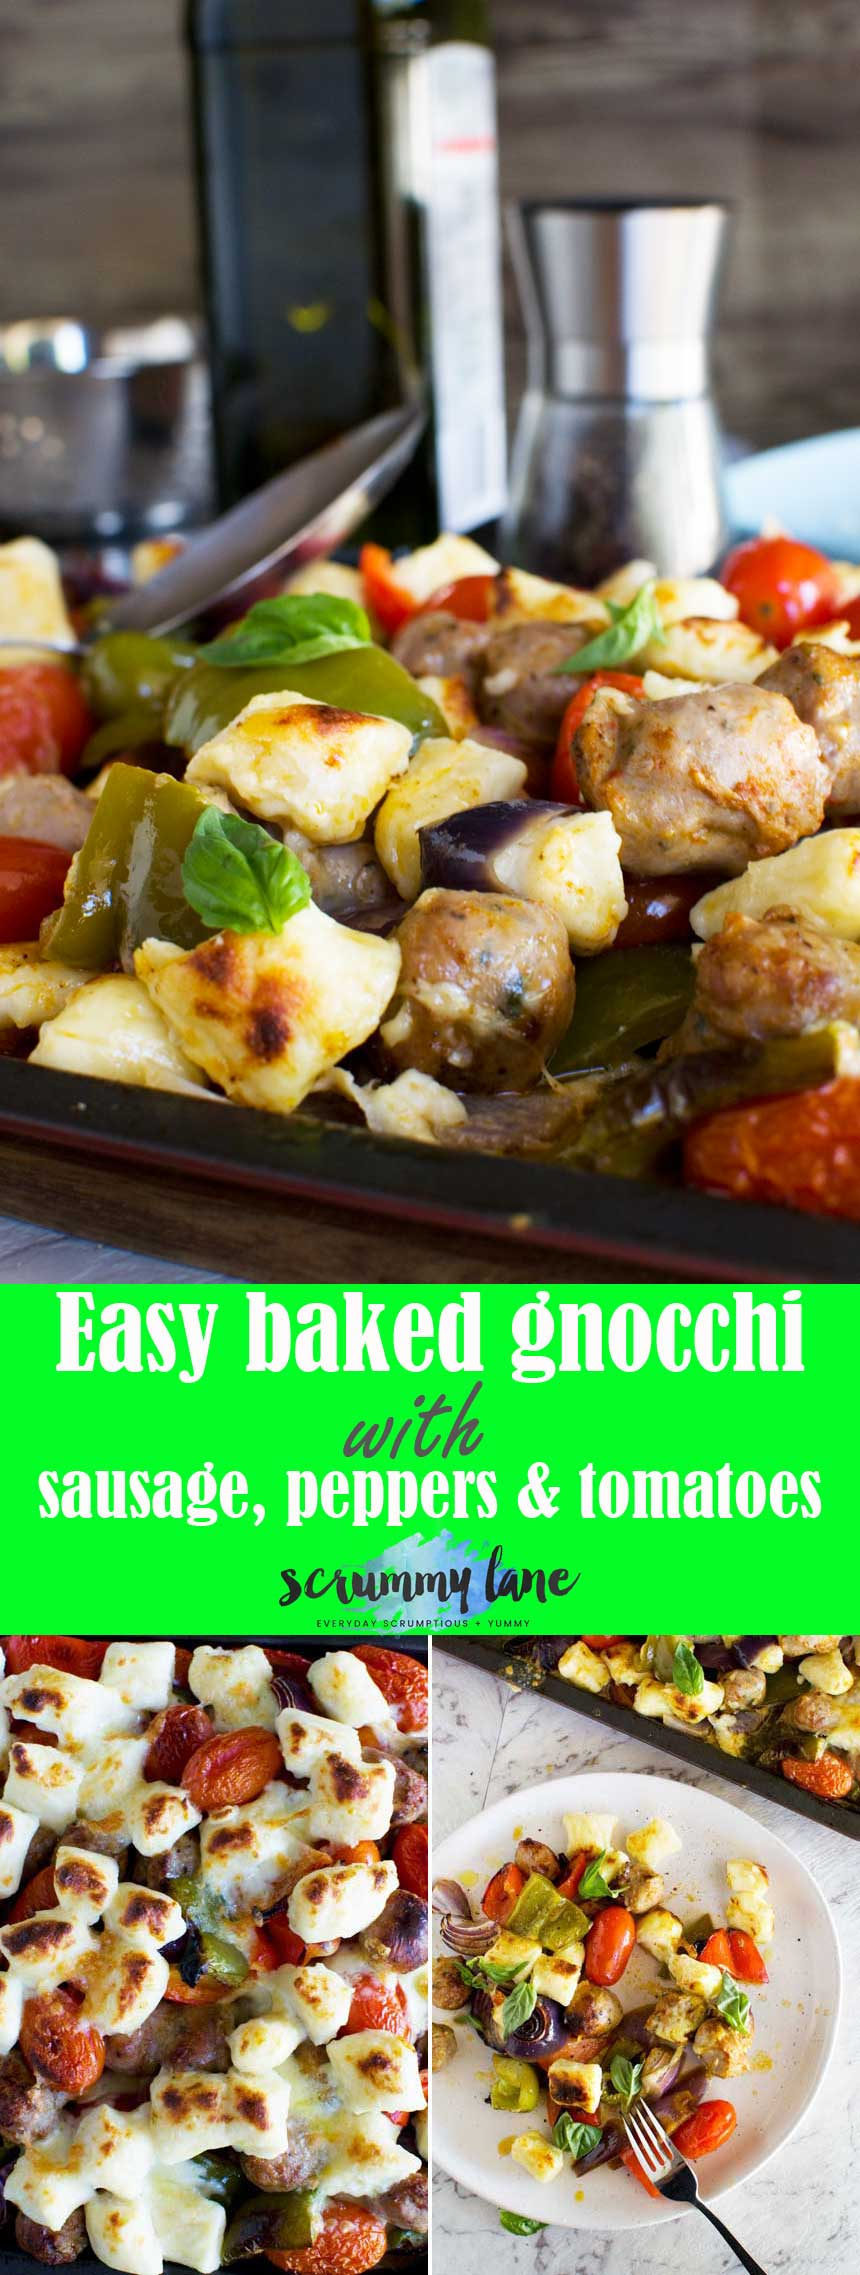 Easy baked gnocchi with sausage, peppers and tomatoes - healthy and delicious, and on the table in only 30 minutes! #gnocchi #italianfood #easymeals #30minutemeal #scrummylane #sausages